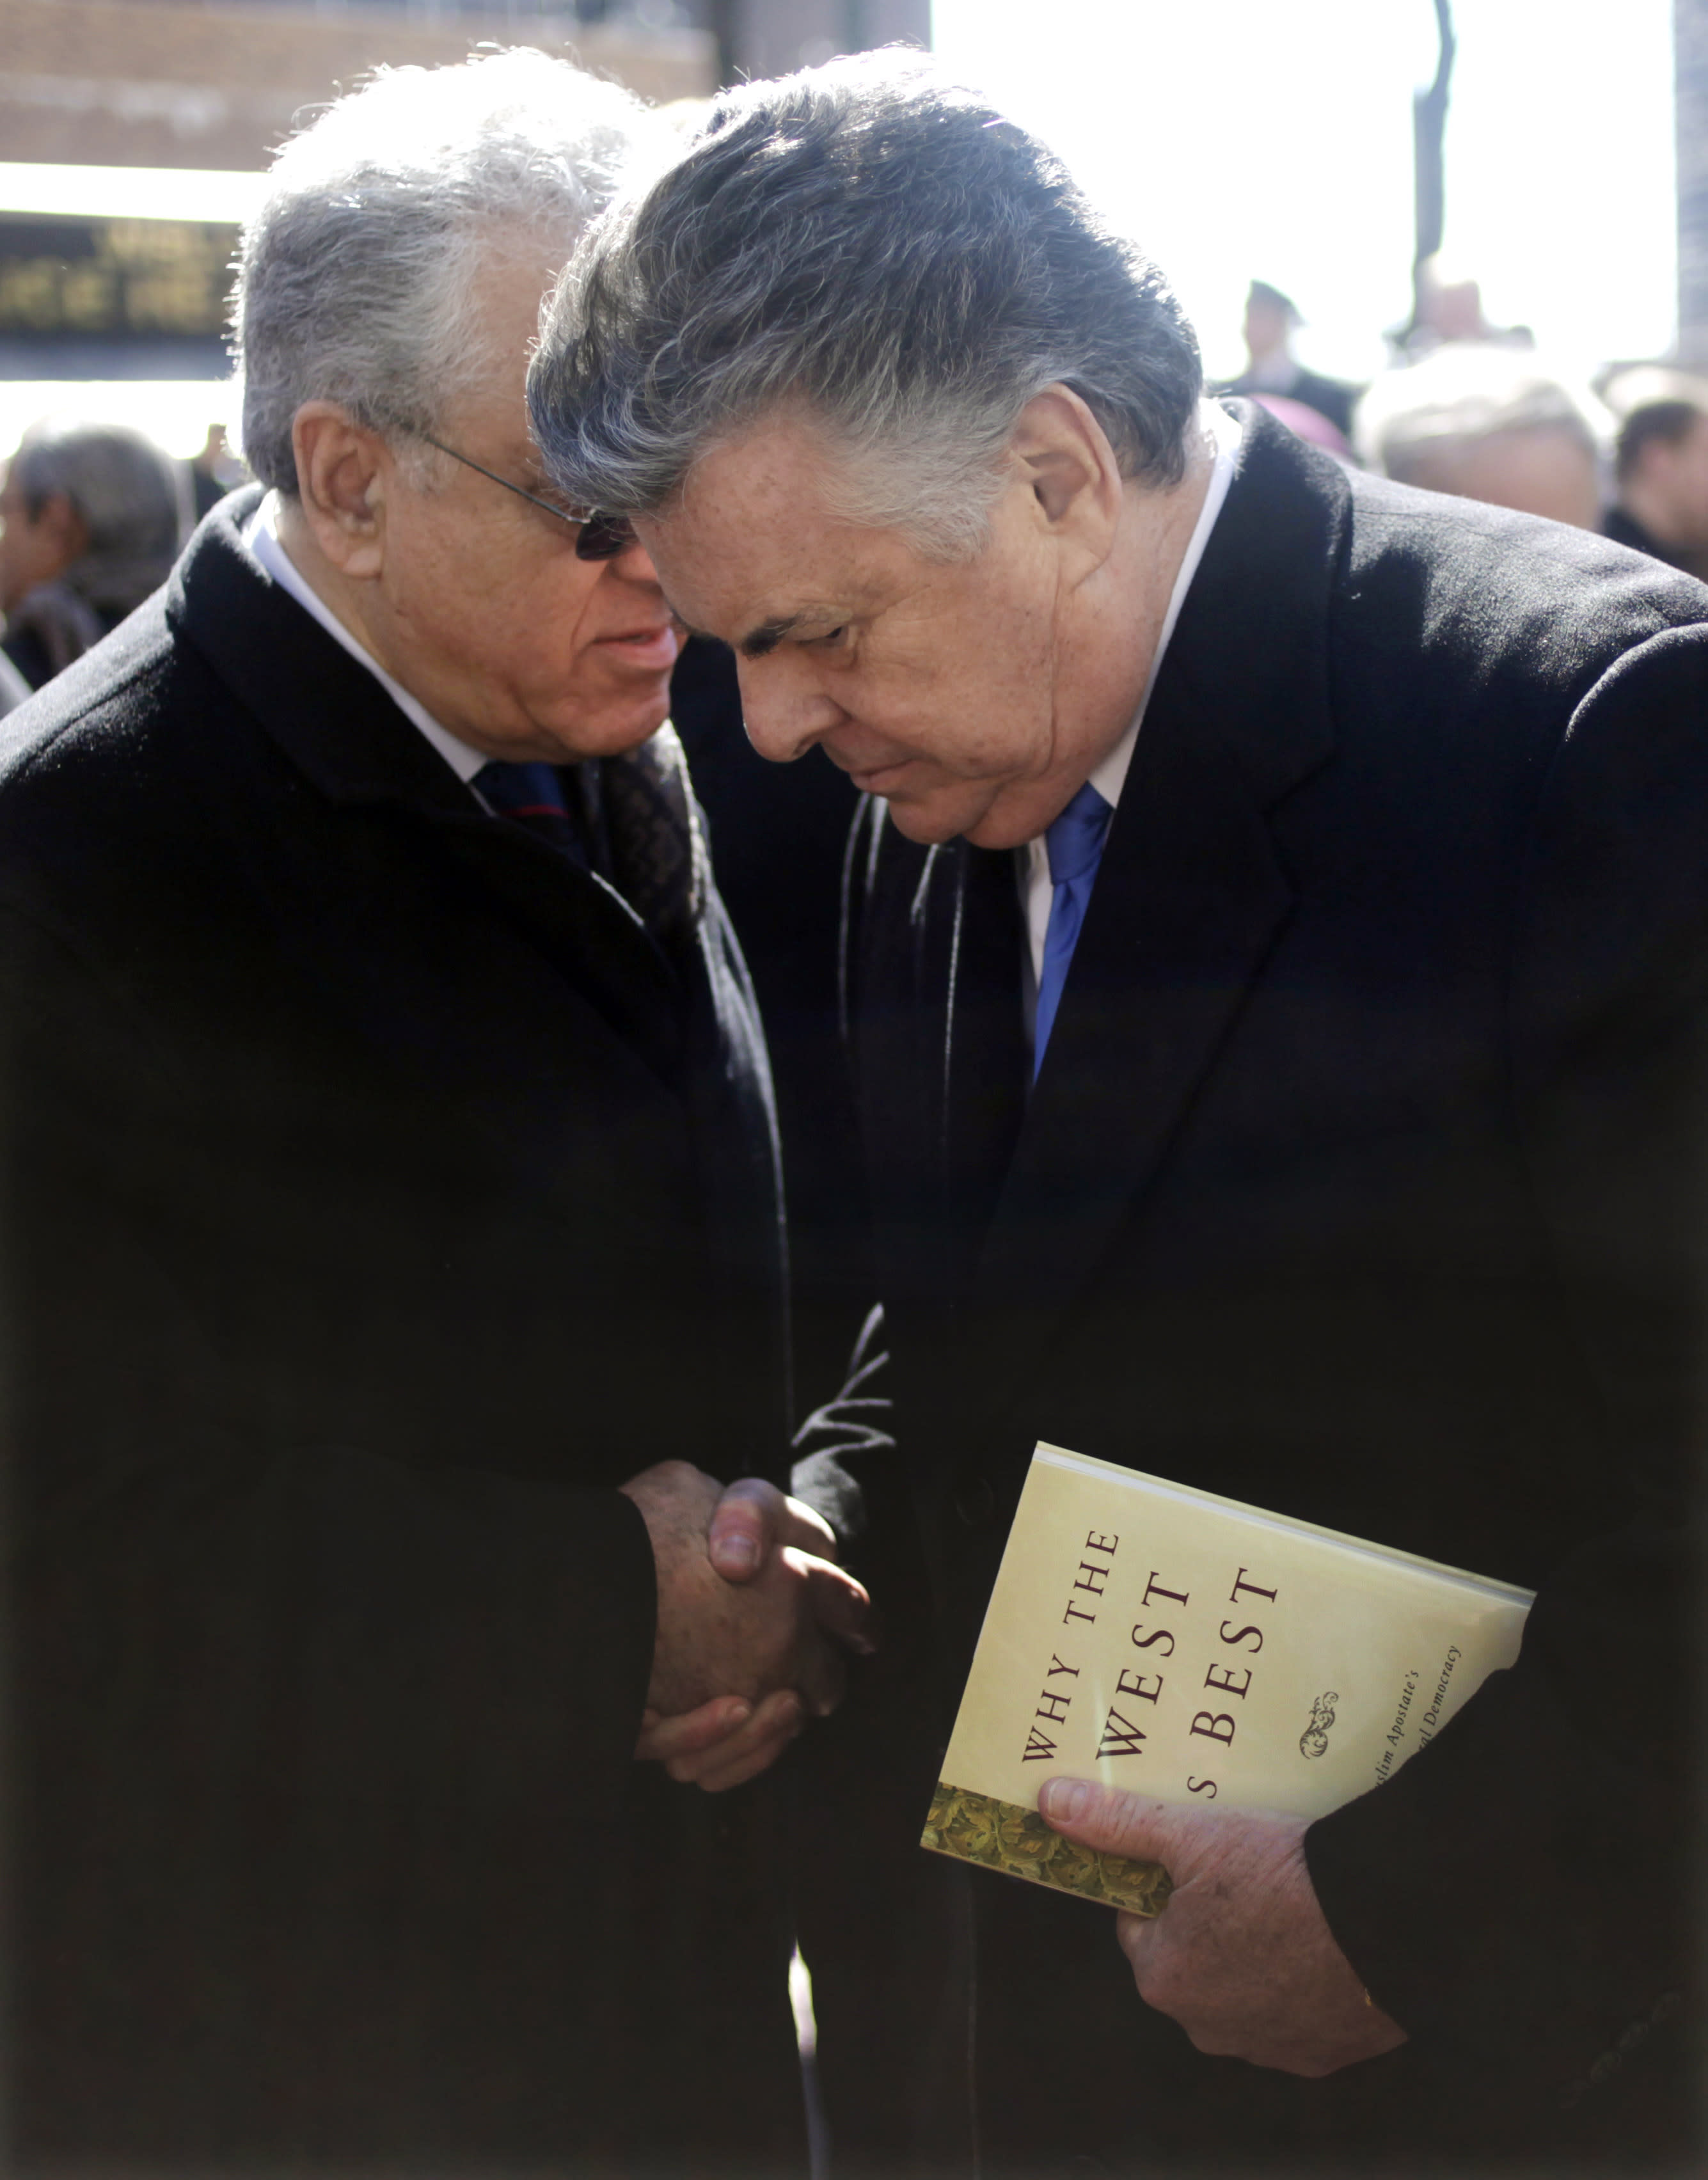 U.S. Rep. Peter King, R-N.Y., right, chairman of the House Committee on Homeland Security, meets with supporters at a news conference in front of police headquarters in New York, Monday, March 5, 2012. King was present with dozens of activists to demonstrate support for the NYPD and their surveillance of Muslim communities. (AP Photo/Seth Wenig)